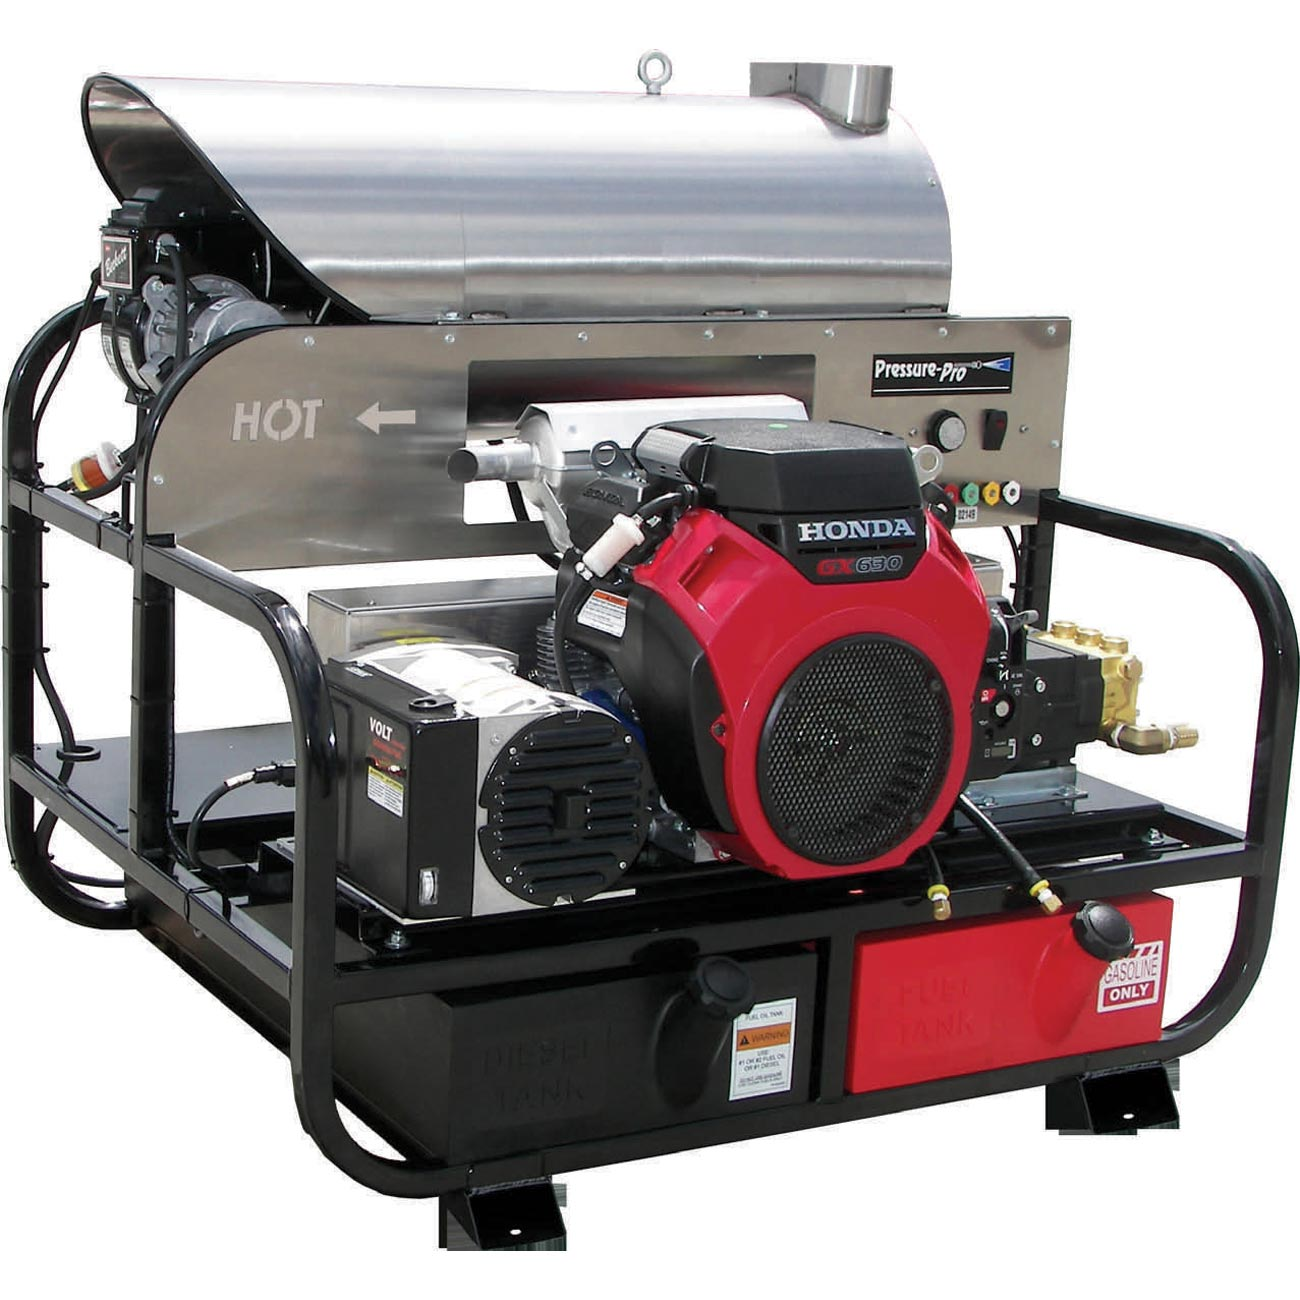 Pressure Pro Super Skid 8115pro 30hg Hot Washer 8gpm 3000psi 24hp Honda Gx390 Charging System Wiring Click To Enlarge